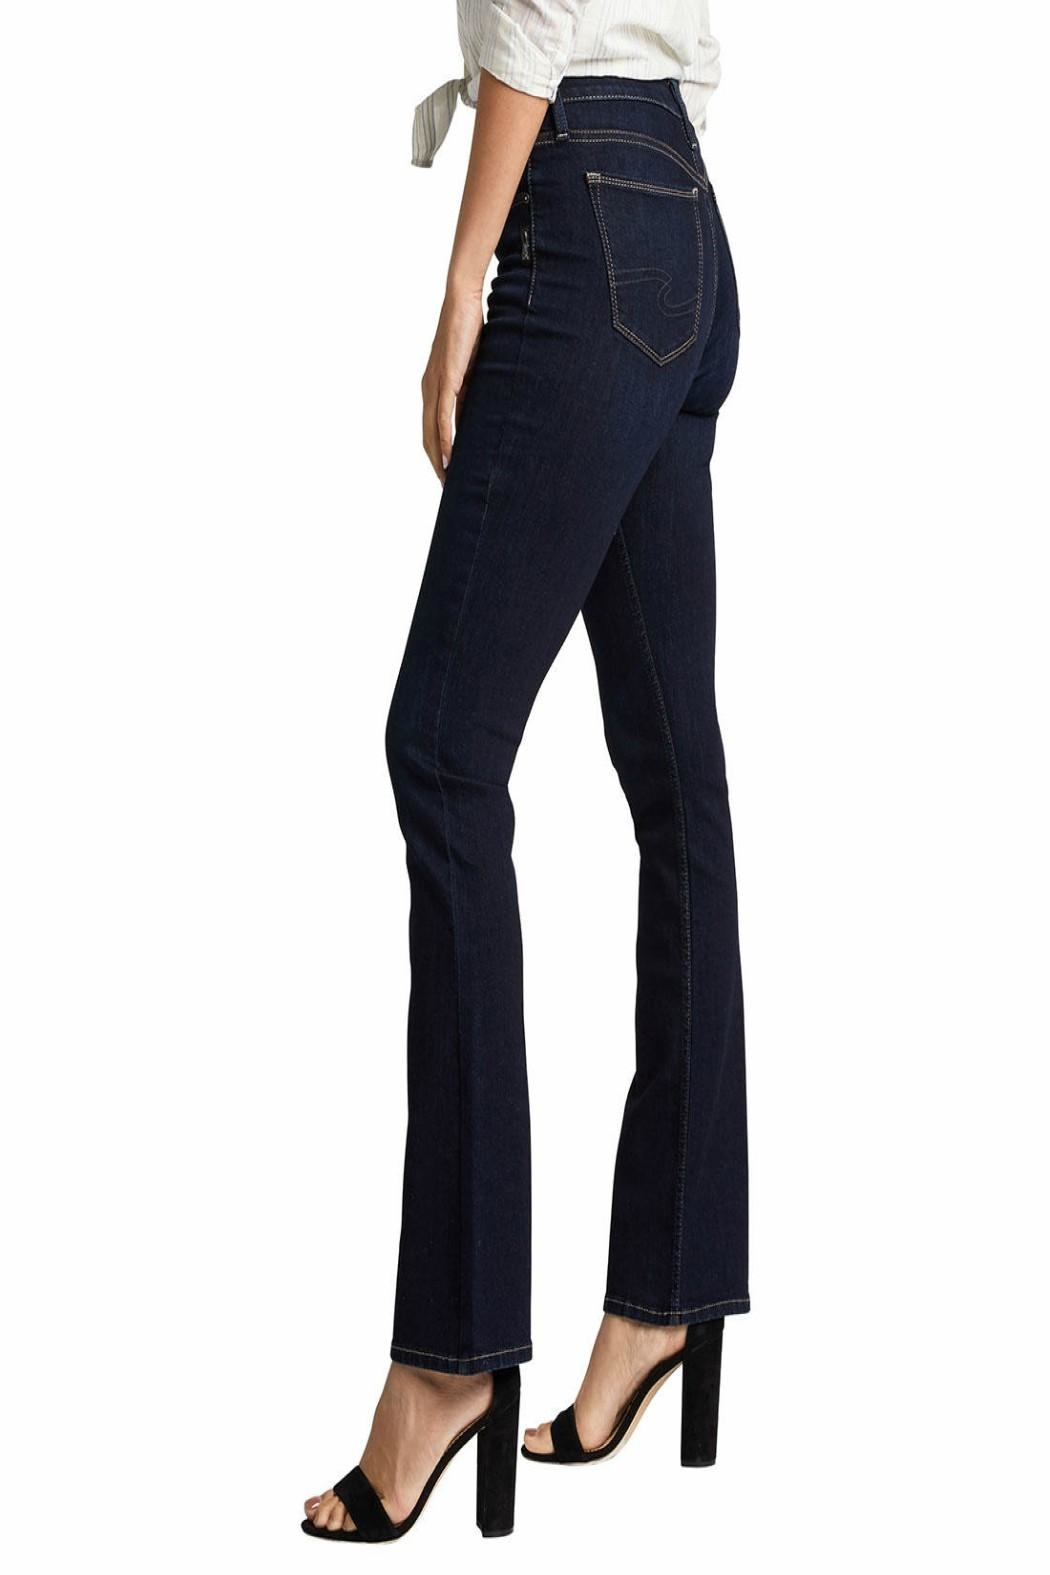 Silver Jeans Co. Avery-Slim High-Rise Jeans - Side Cropped Image